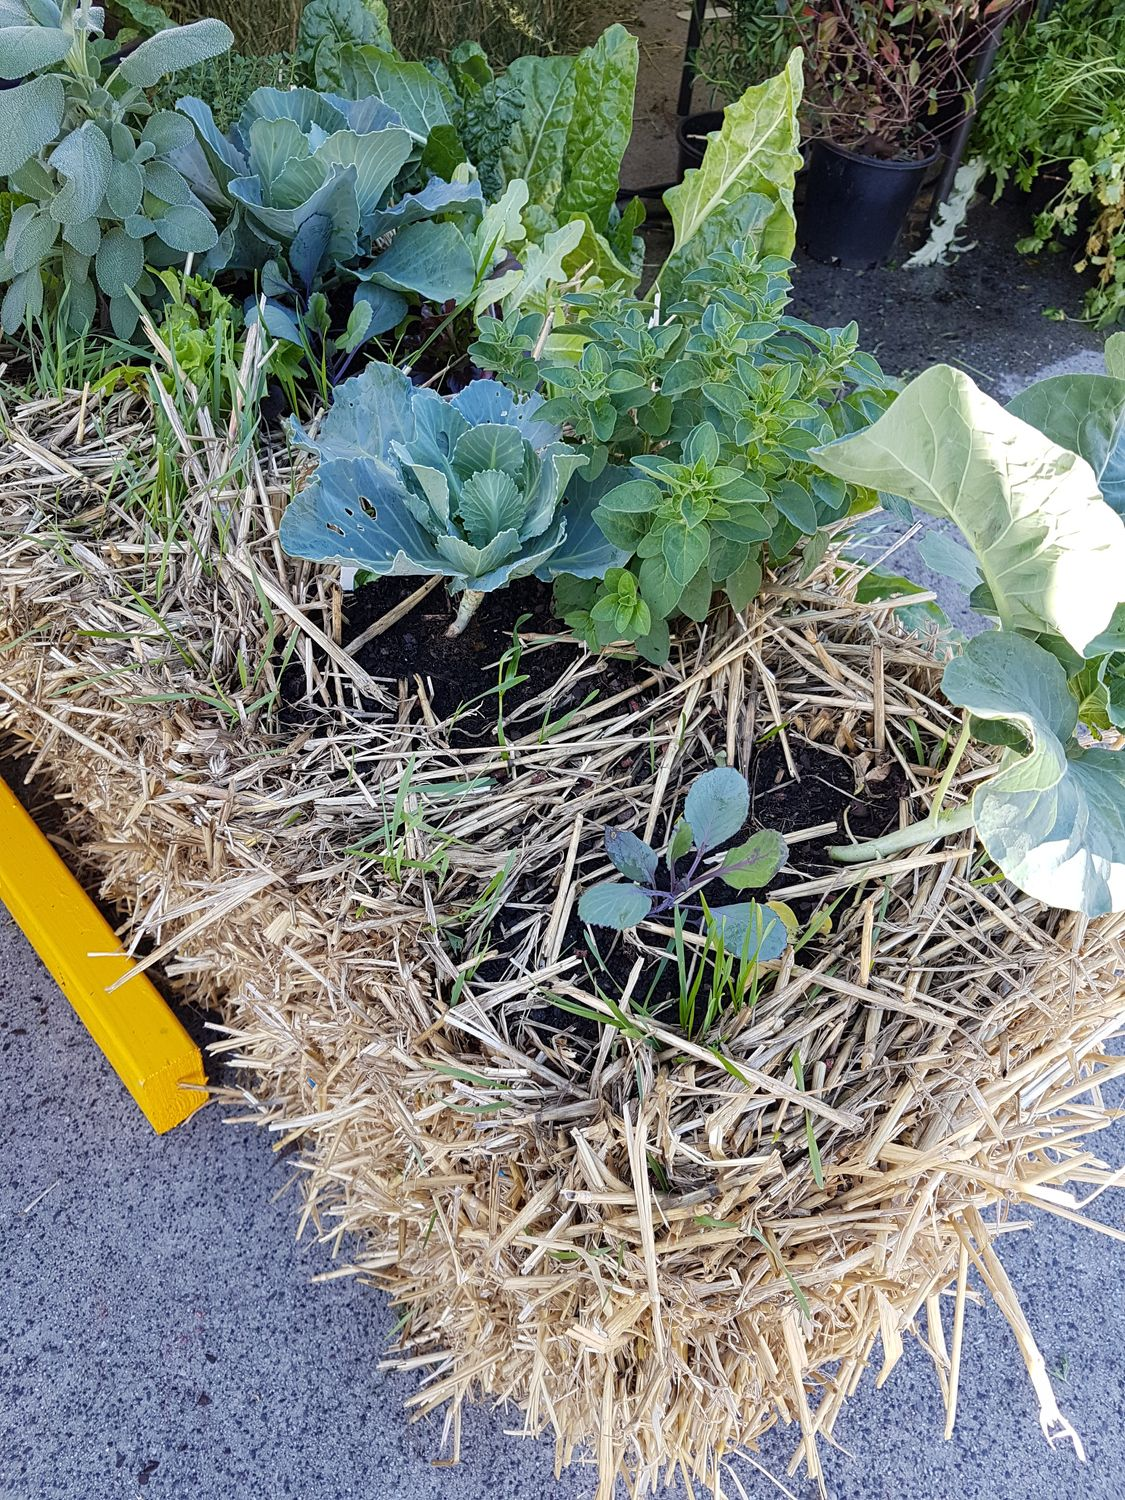 Straw Bale Gardening Is Easier Than You Think—Here's What to Know